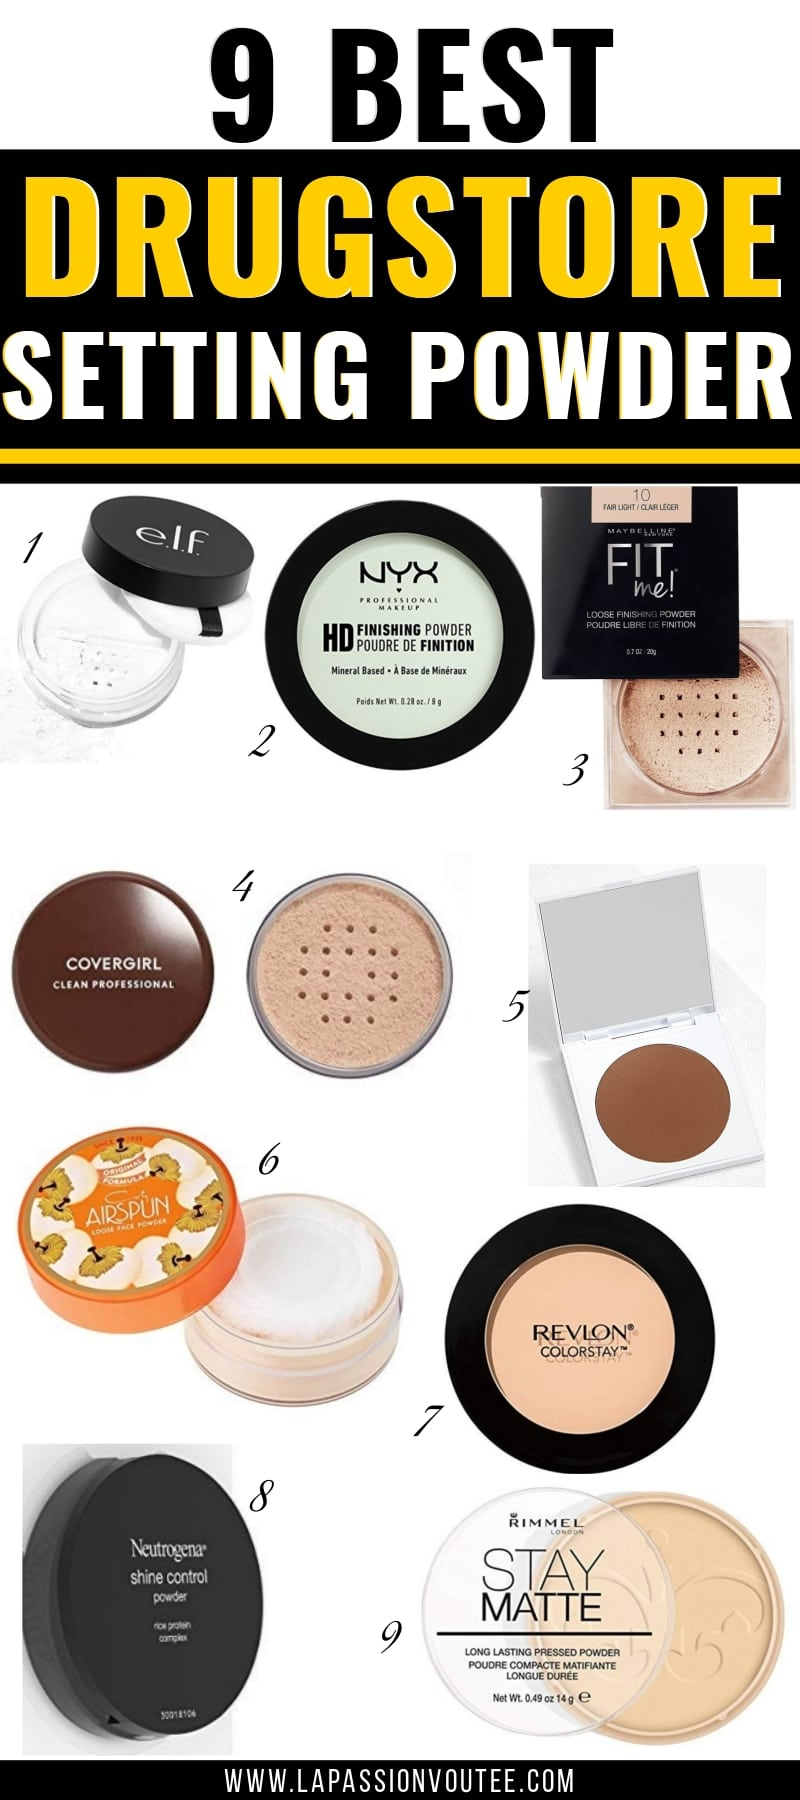 We've rounded up the best drugstore setting powders for oily skin that REALLY work